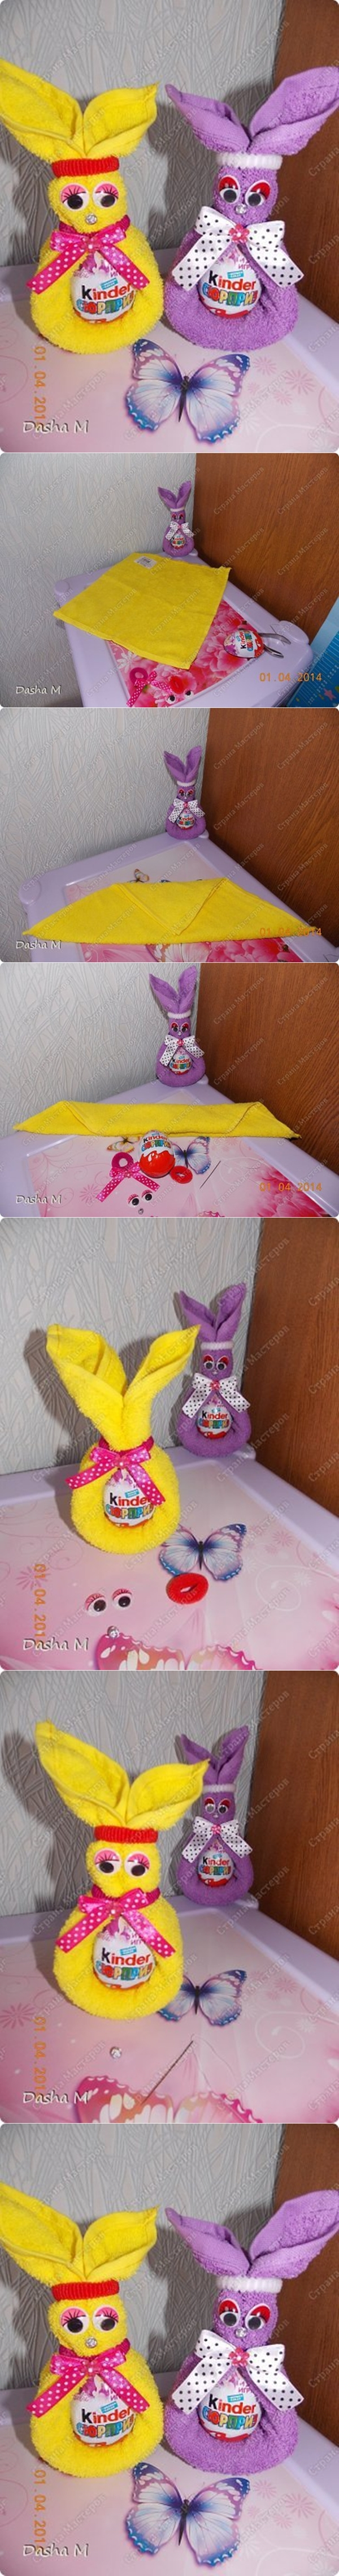 DIY Towel Bunny with Easter Egg in Last Minute